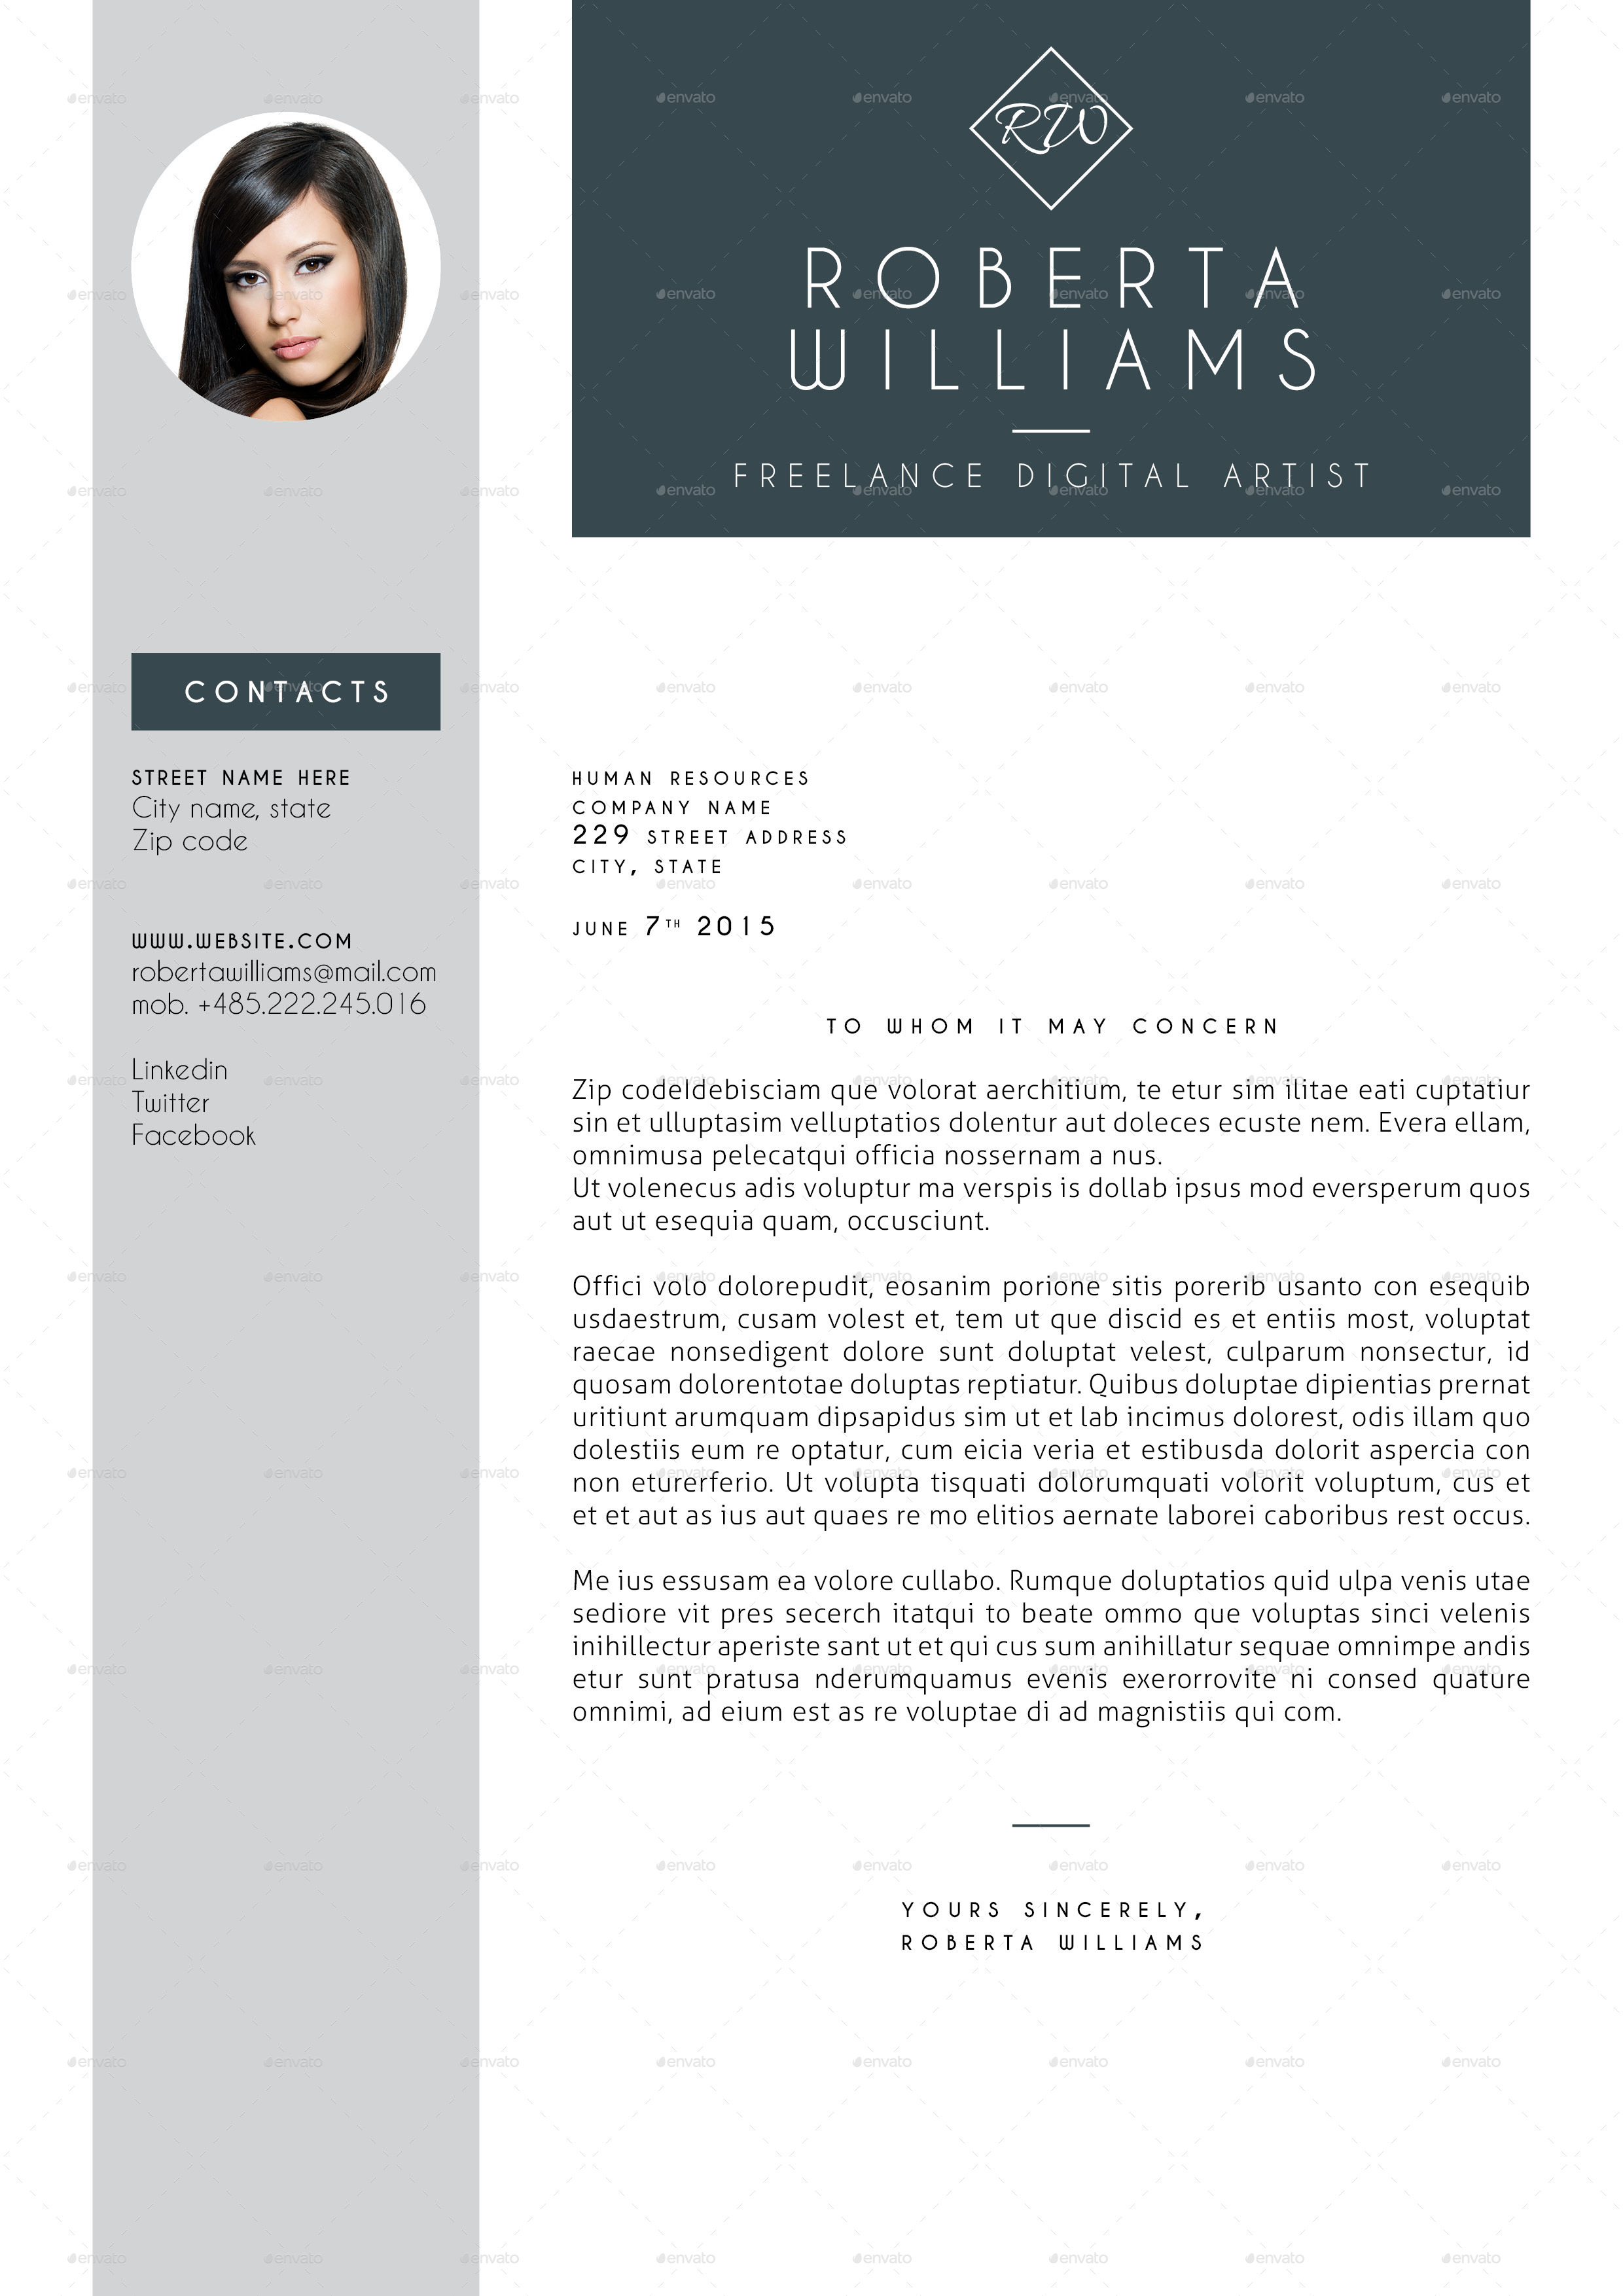 adobe indesign cv template free - Selo.l-ink.co